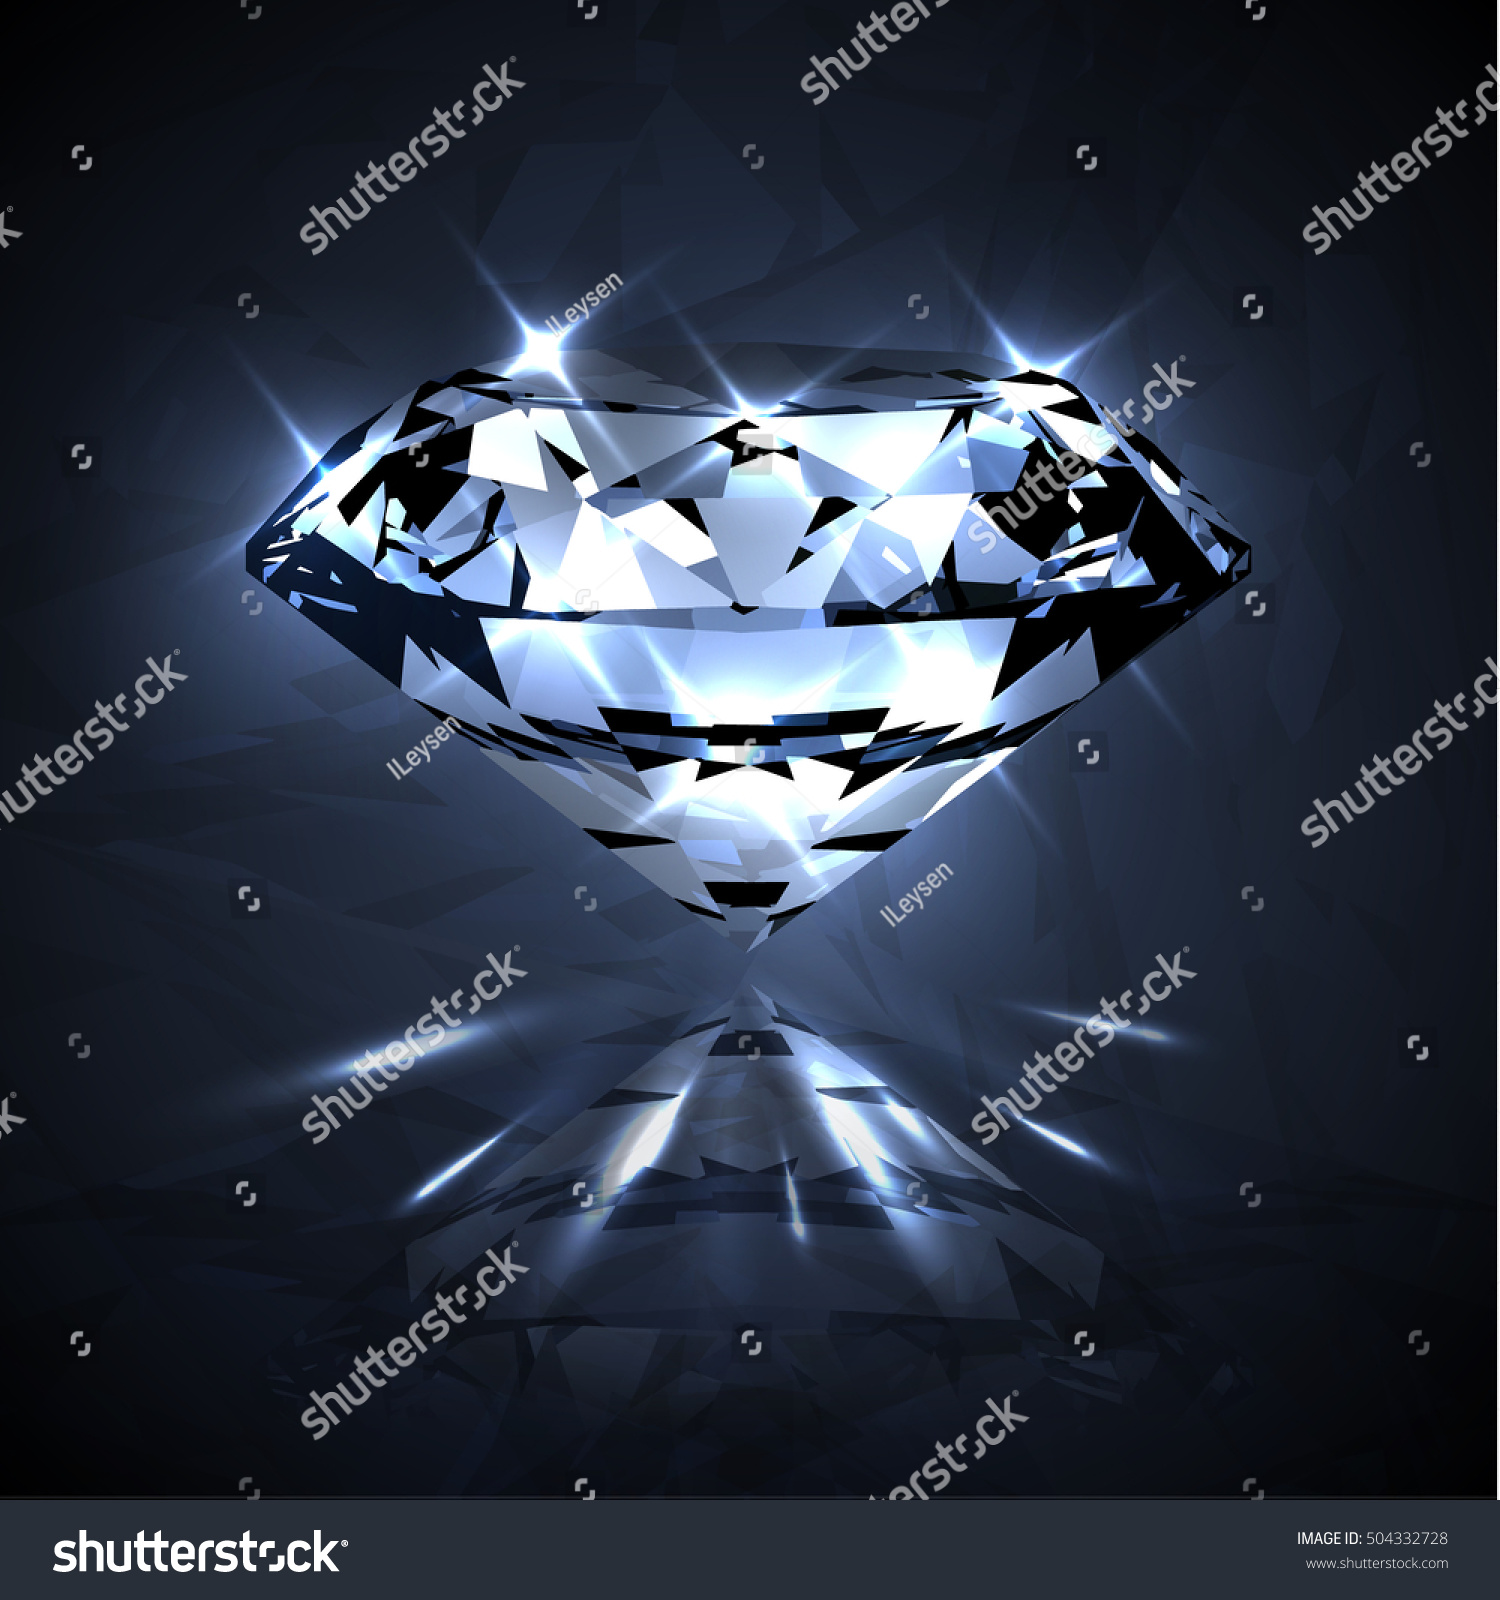 m beautiful diamond highjewelry gerard pin hautejoaillerie royalty